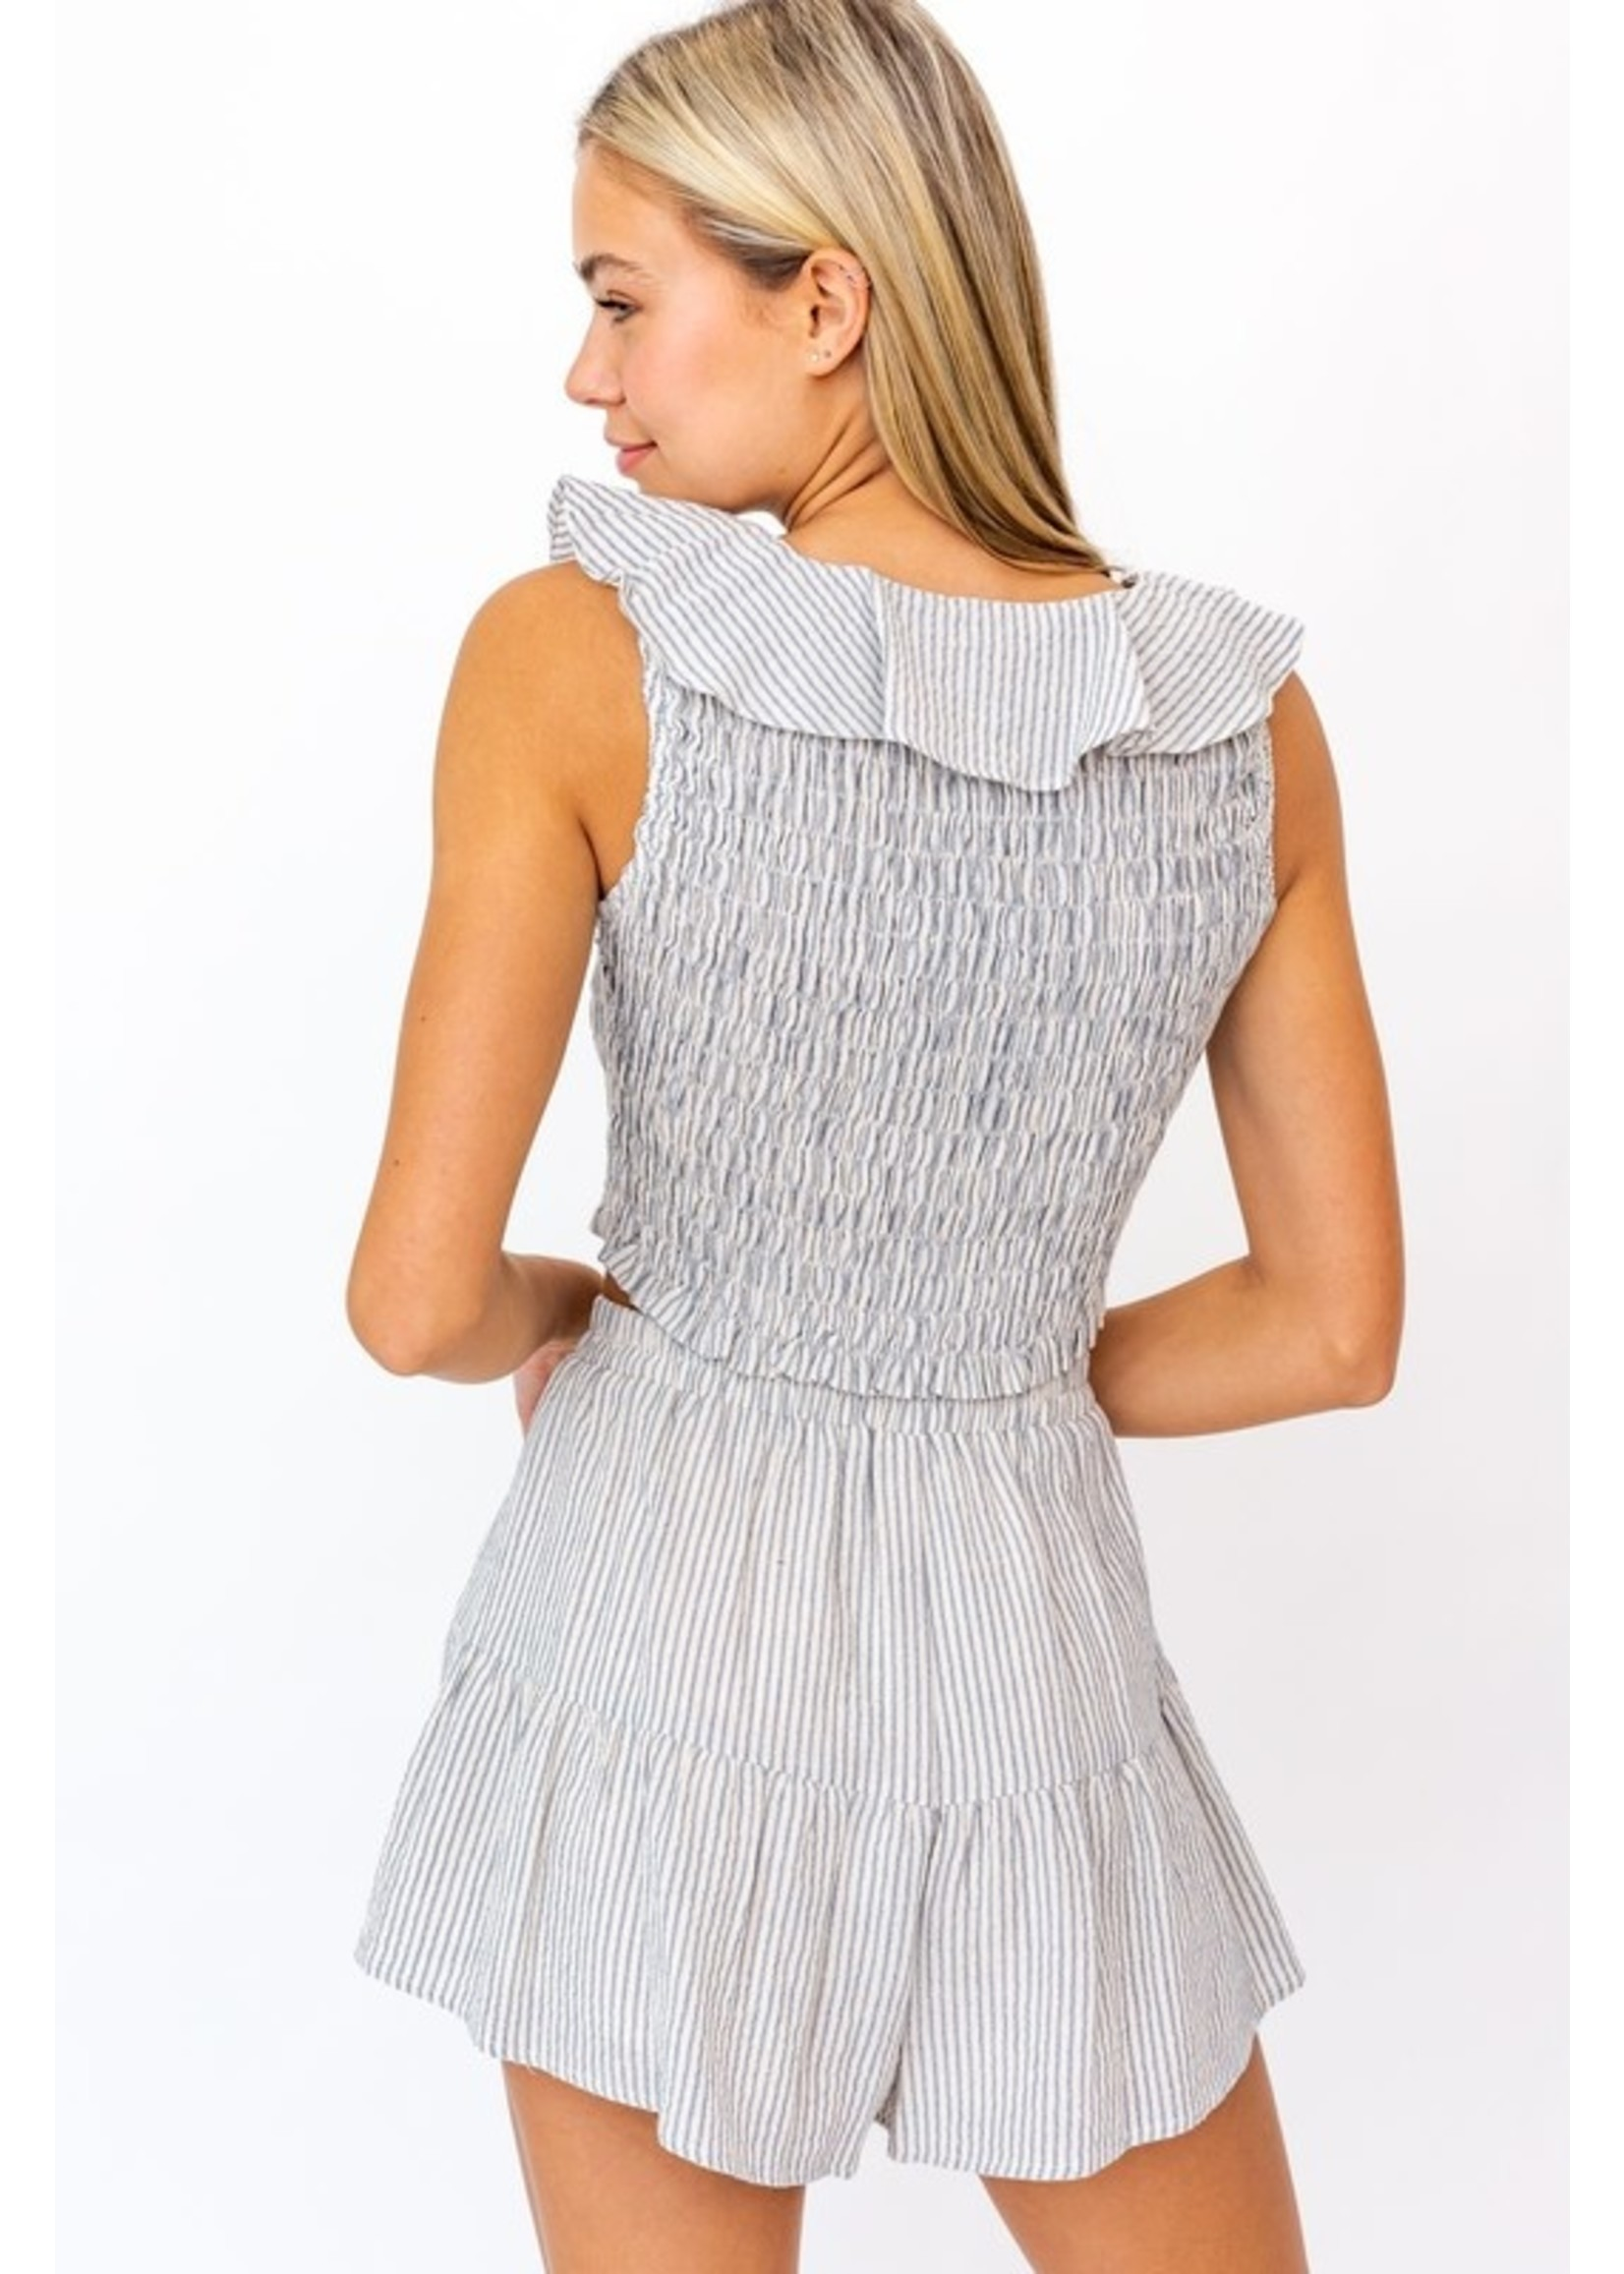 Le Lis Striped Smocked and Ruffled Top - MT4065